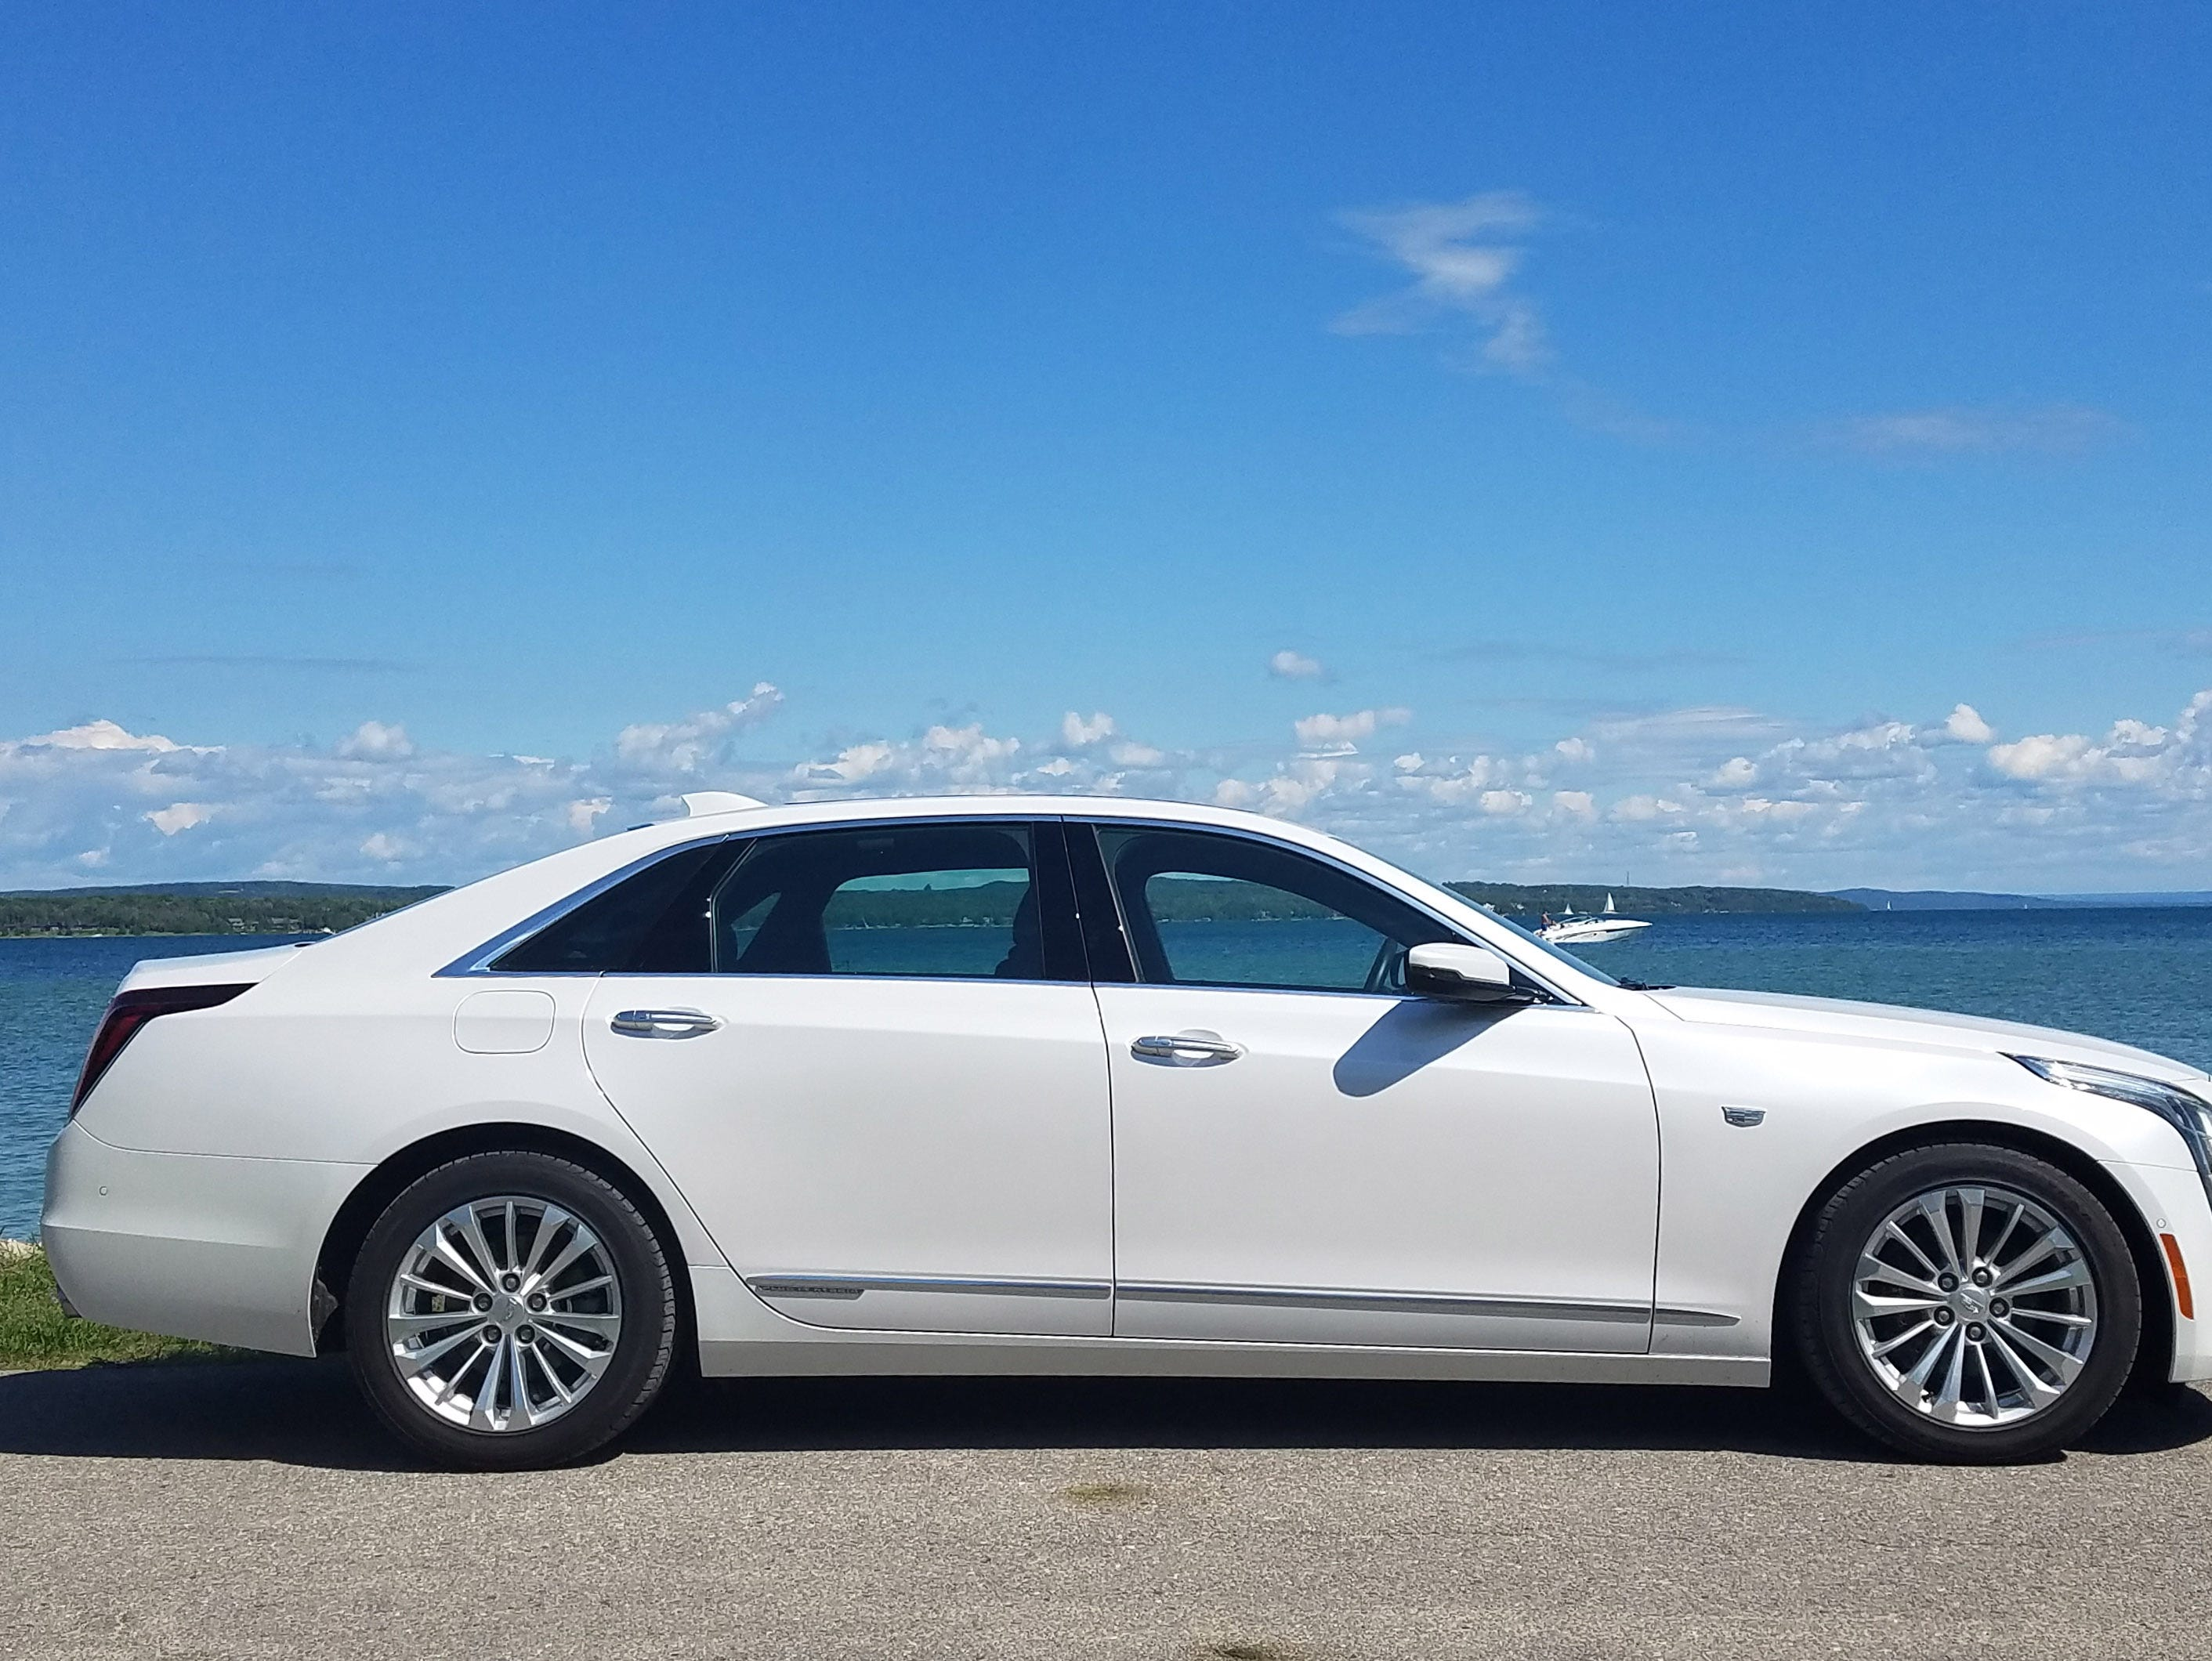 The rear-wheel-drive 2017 Cadillac CT6 Plug-in goes from zero to 60 in 5.2 seconds with 31-mile electric-only range.